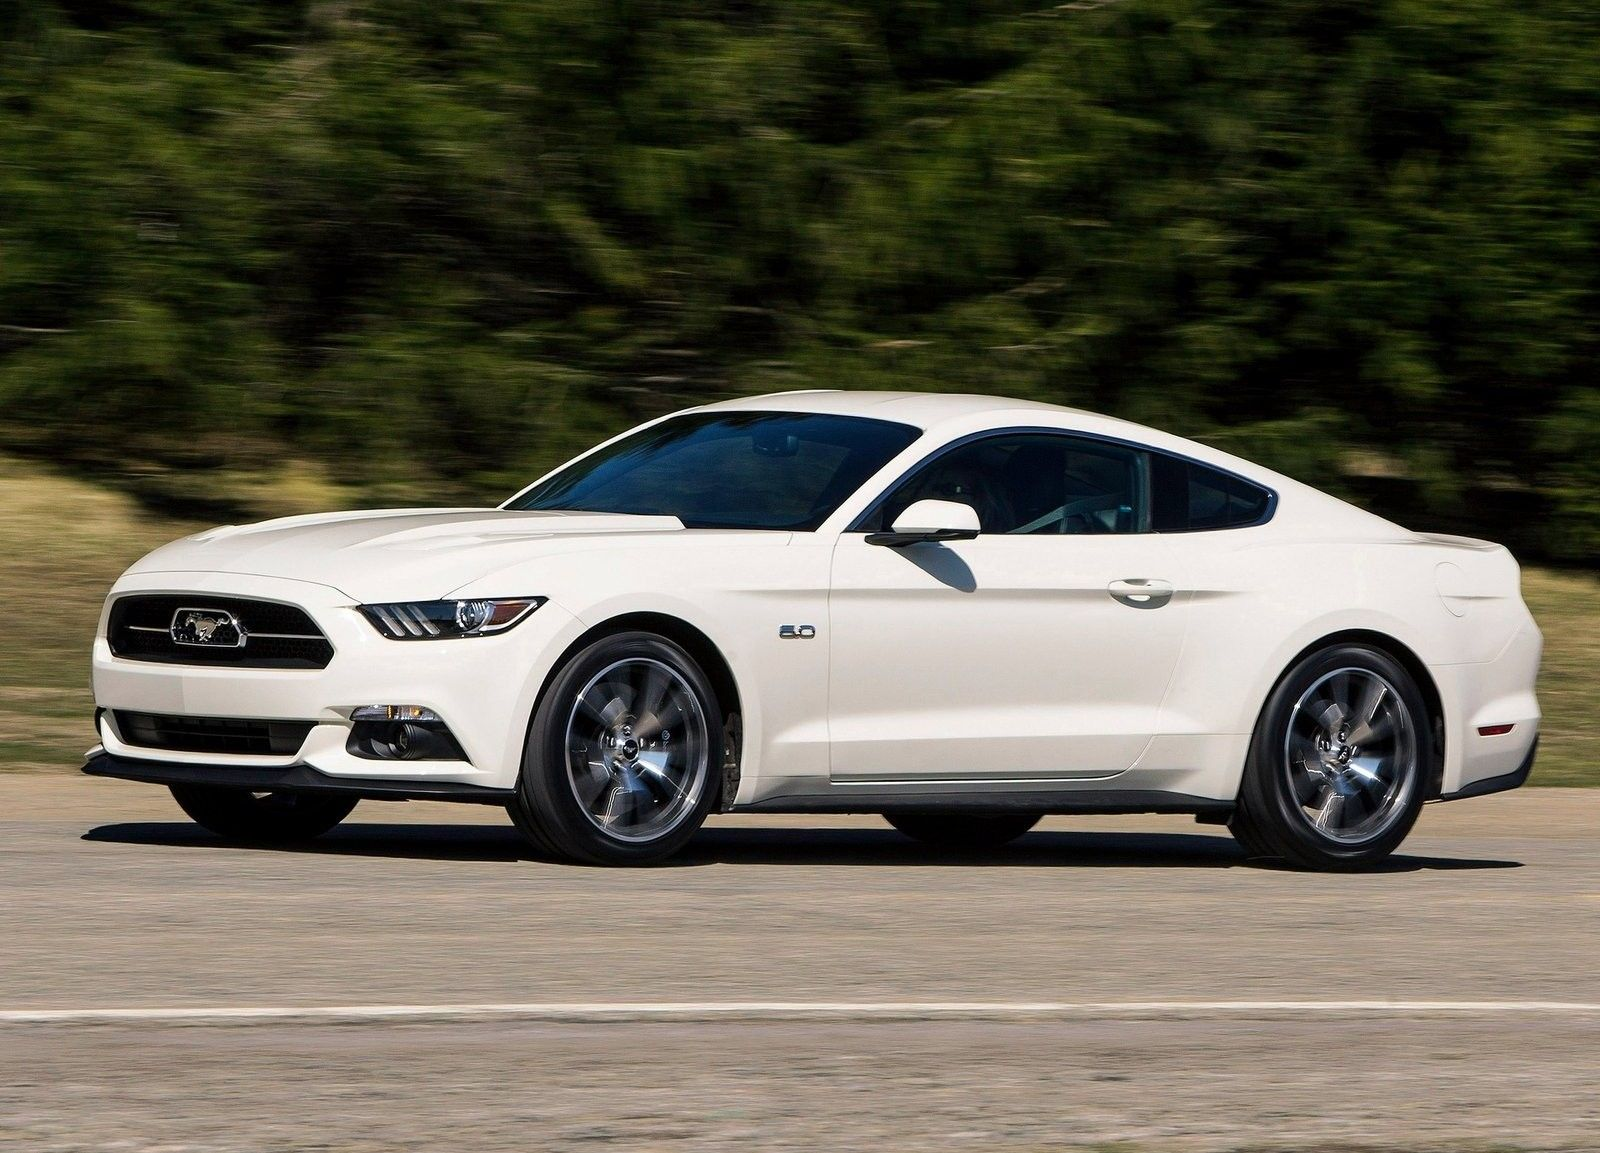 New ford mustang unveiled 50th anniversary limited edition mustang at 2014 new york